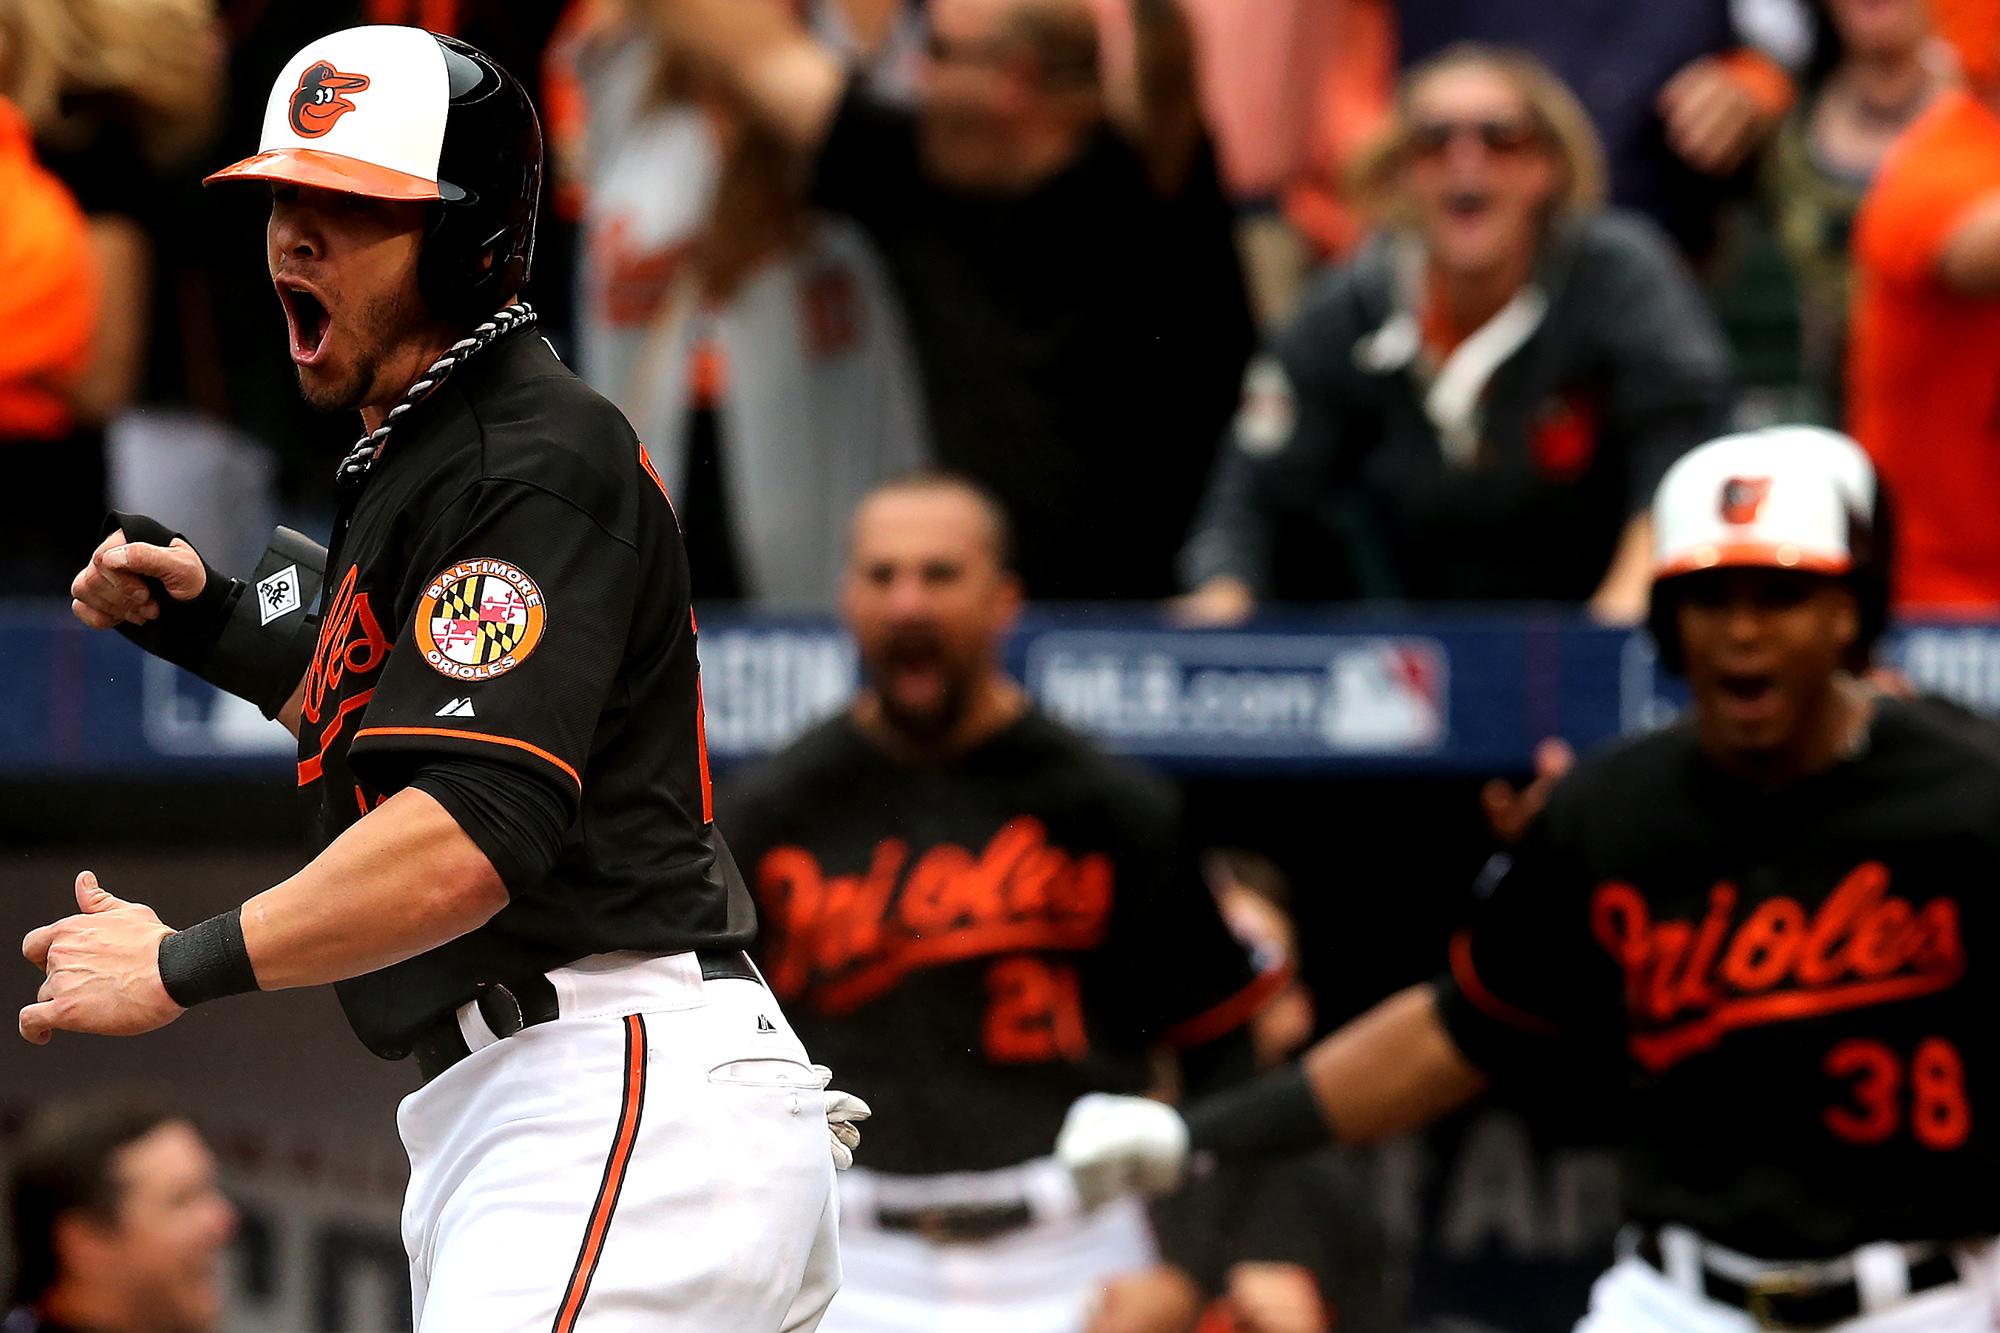 Baltimore Orioles first baseman Steve Pearce celebrates after Delmon Young hit a double duringGame Two of the American League Division Series against the Detroit Tigers at Oriole Park at Camden Yards on October 3, 2014 in Baltimore, Maryland.